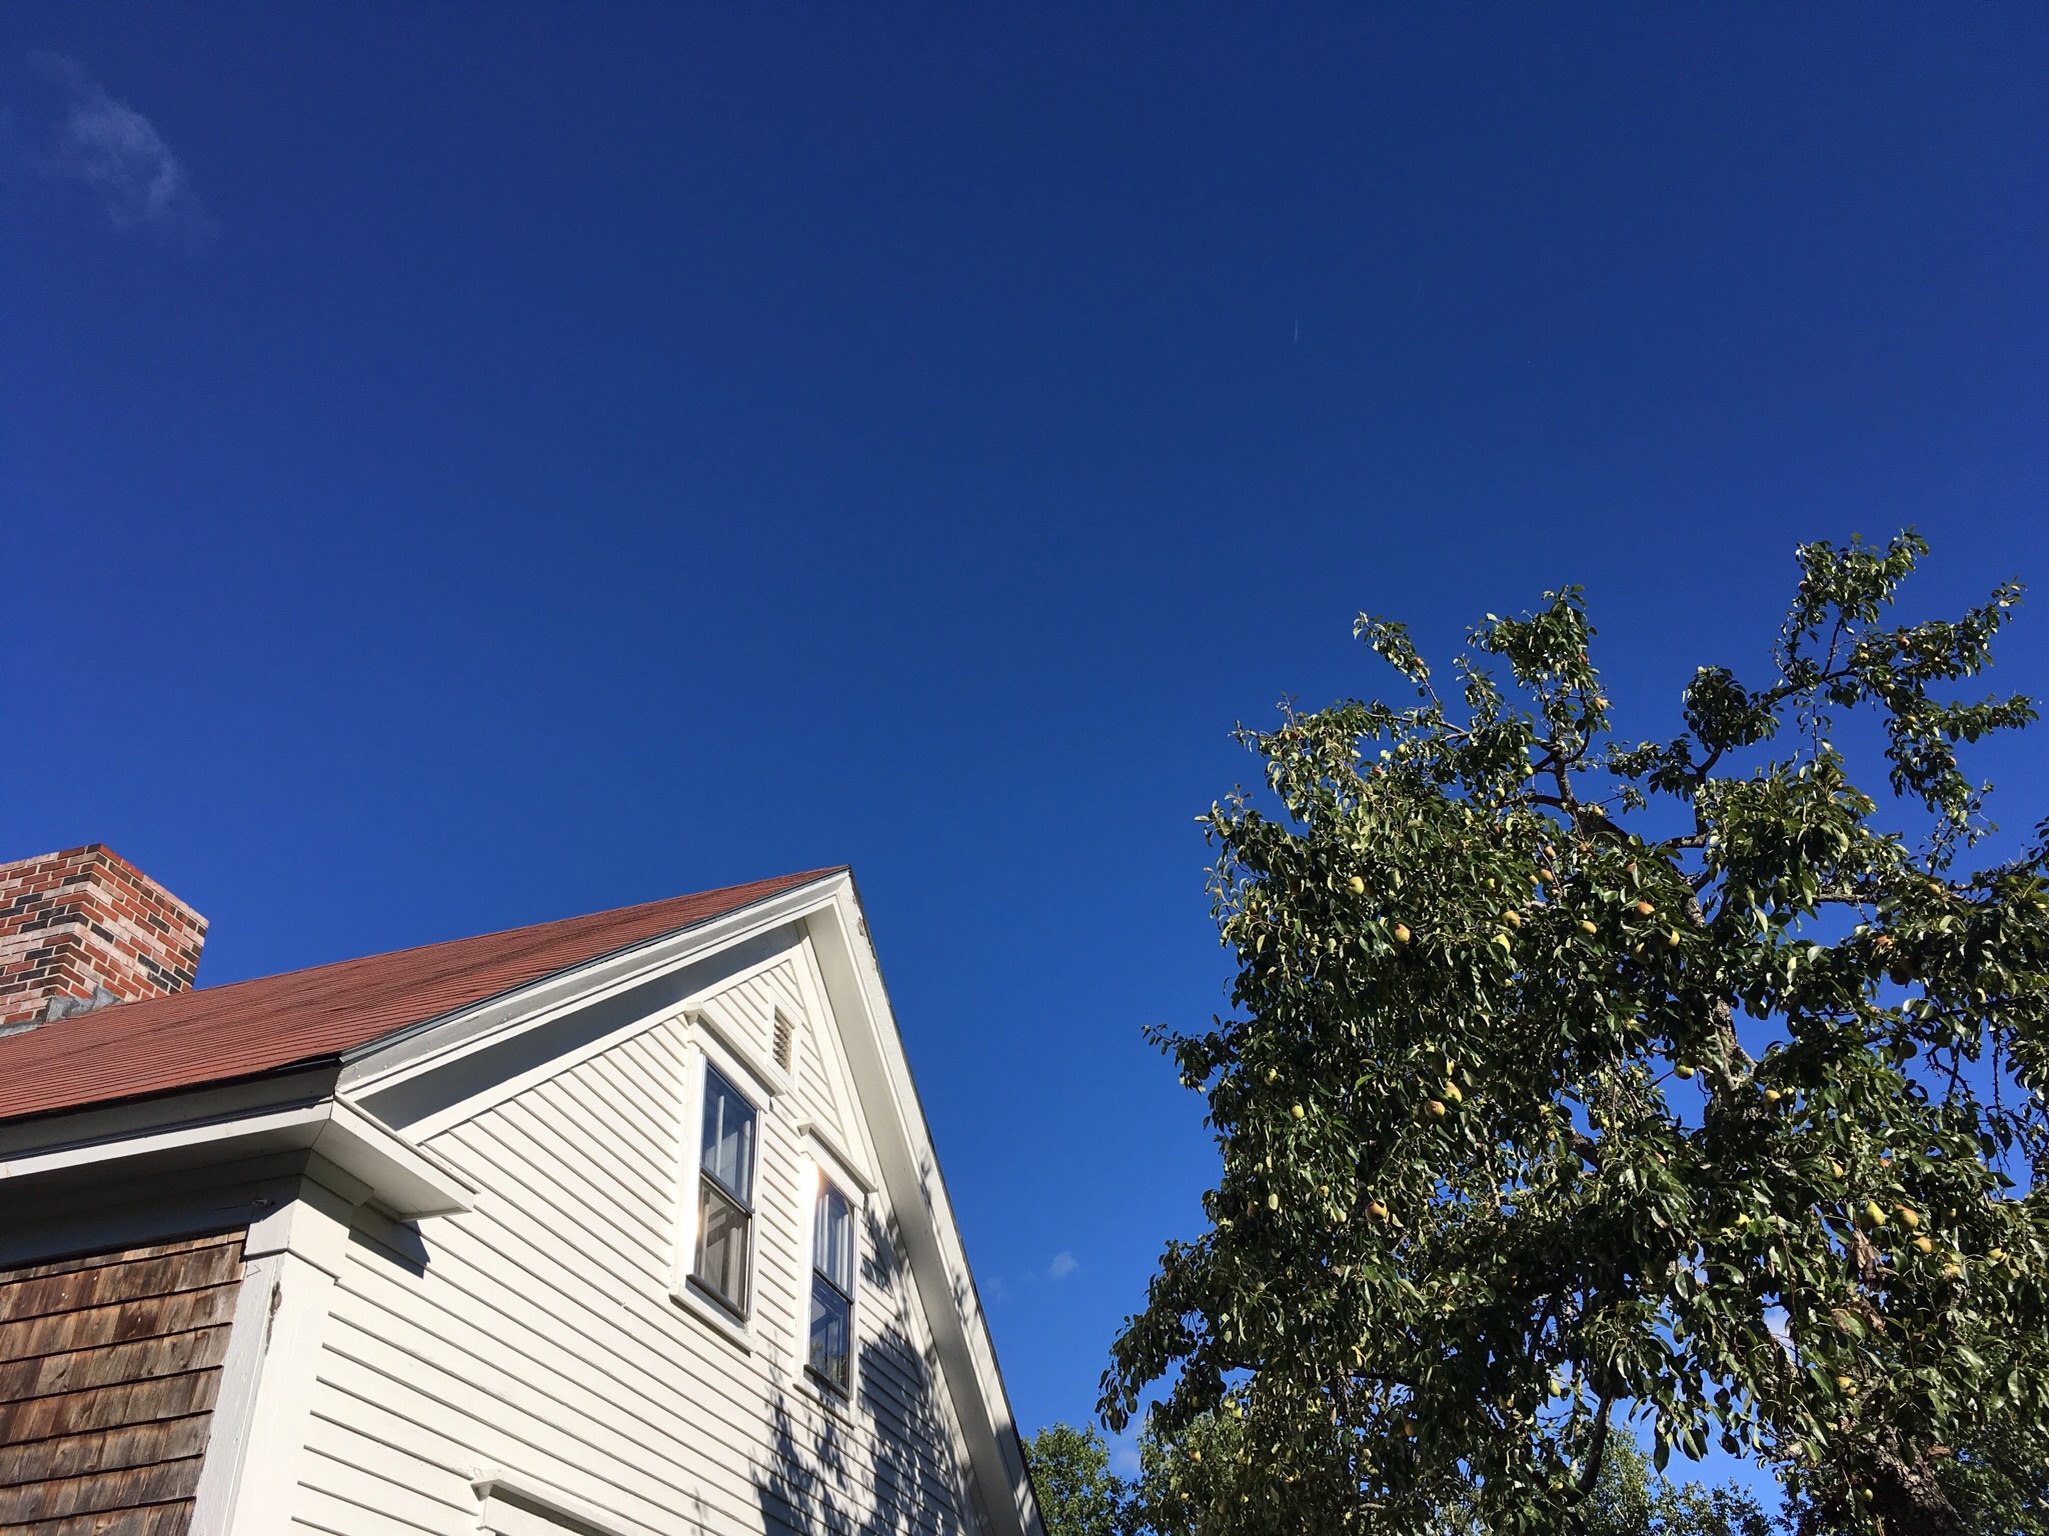 End of August sky looking up at the house and pear tree. Lots of pears for giraffes up there.